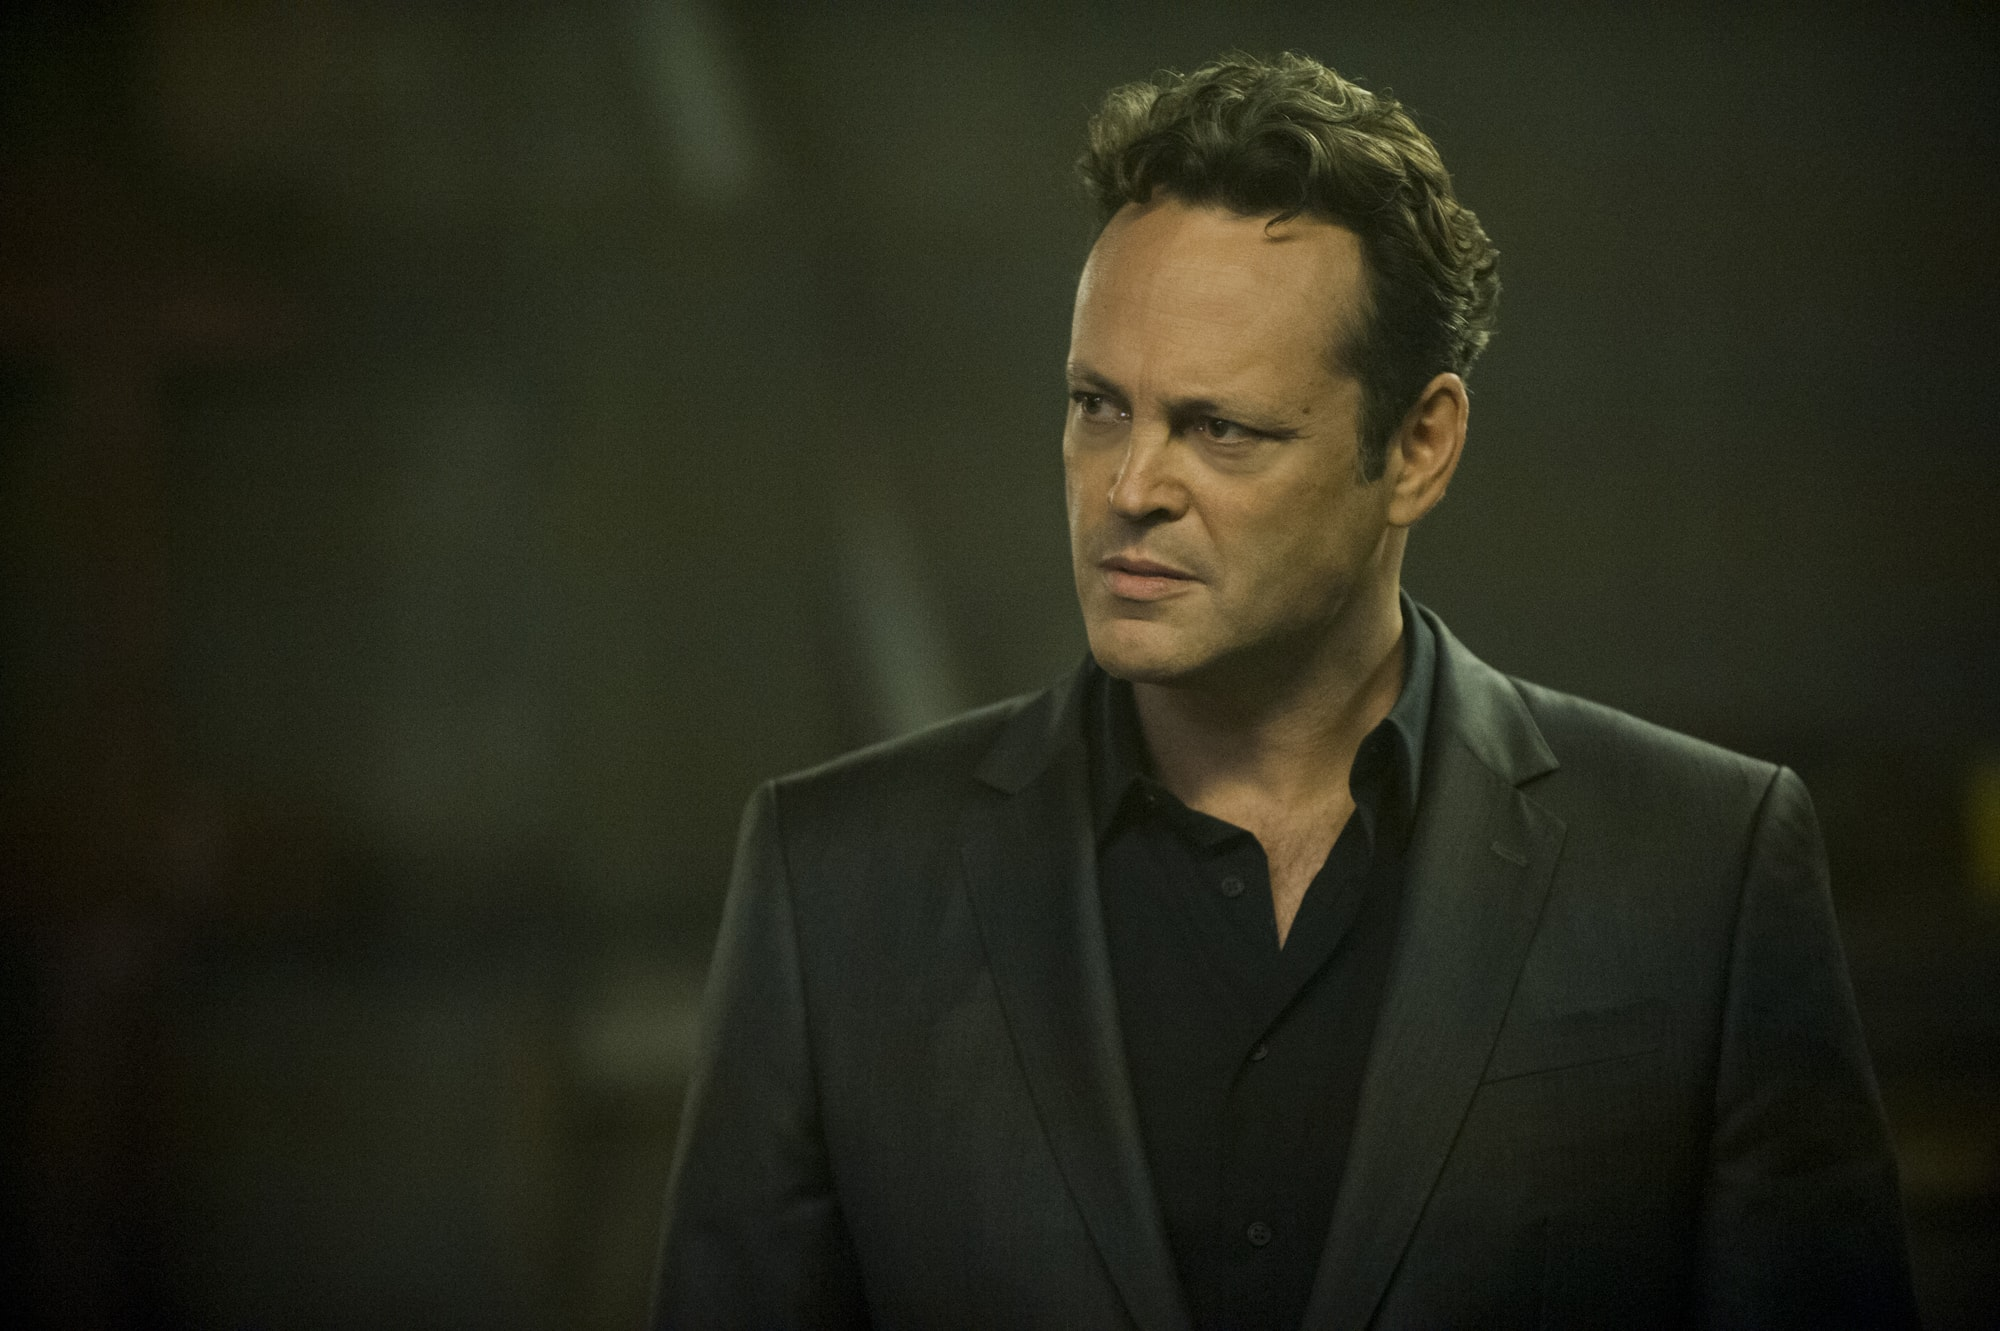 Vince Vaughn Full hd wallpapers